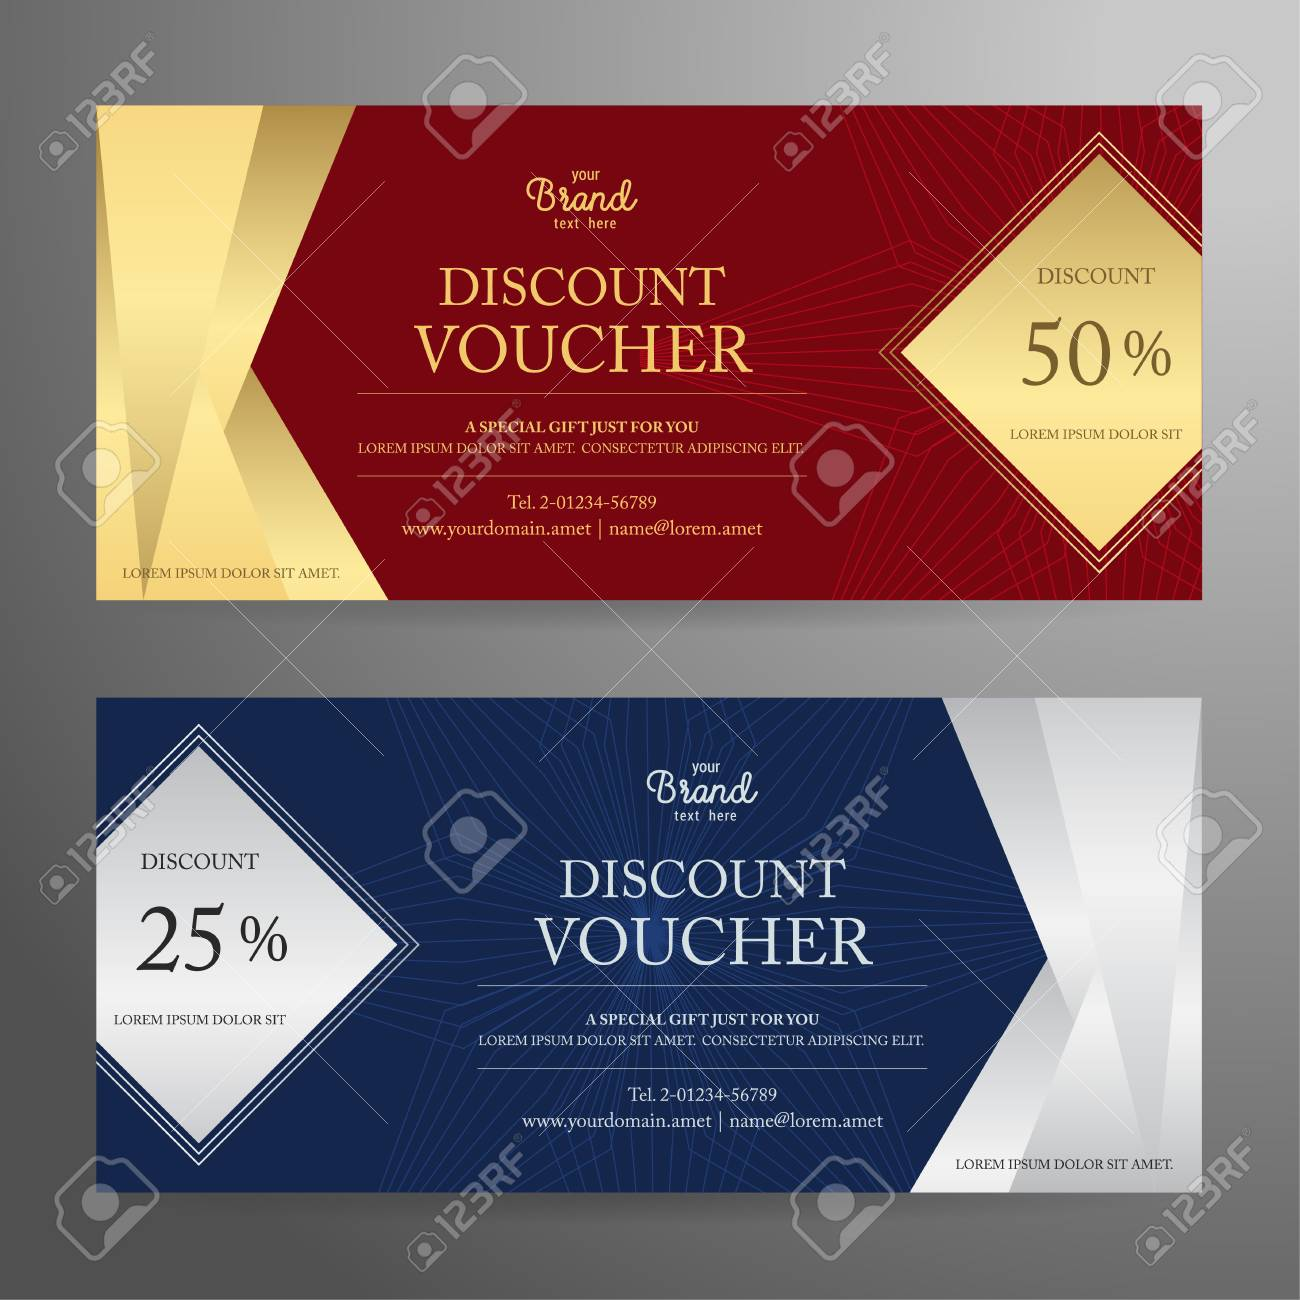 Elegant Gift Voucher Or Gift Card Or Coupon Template For Discount ...